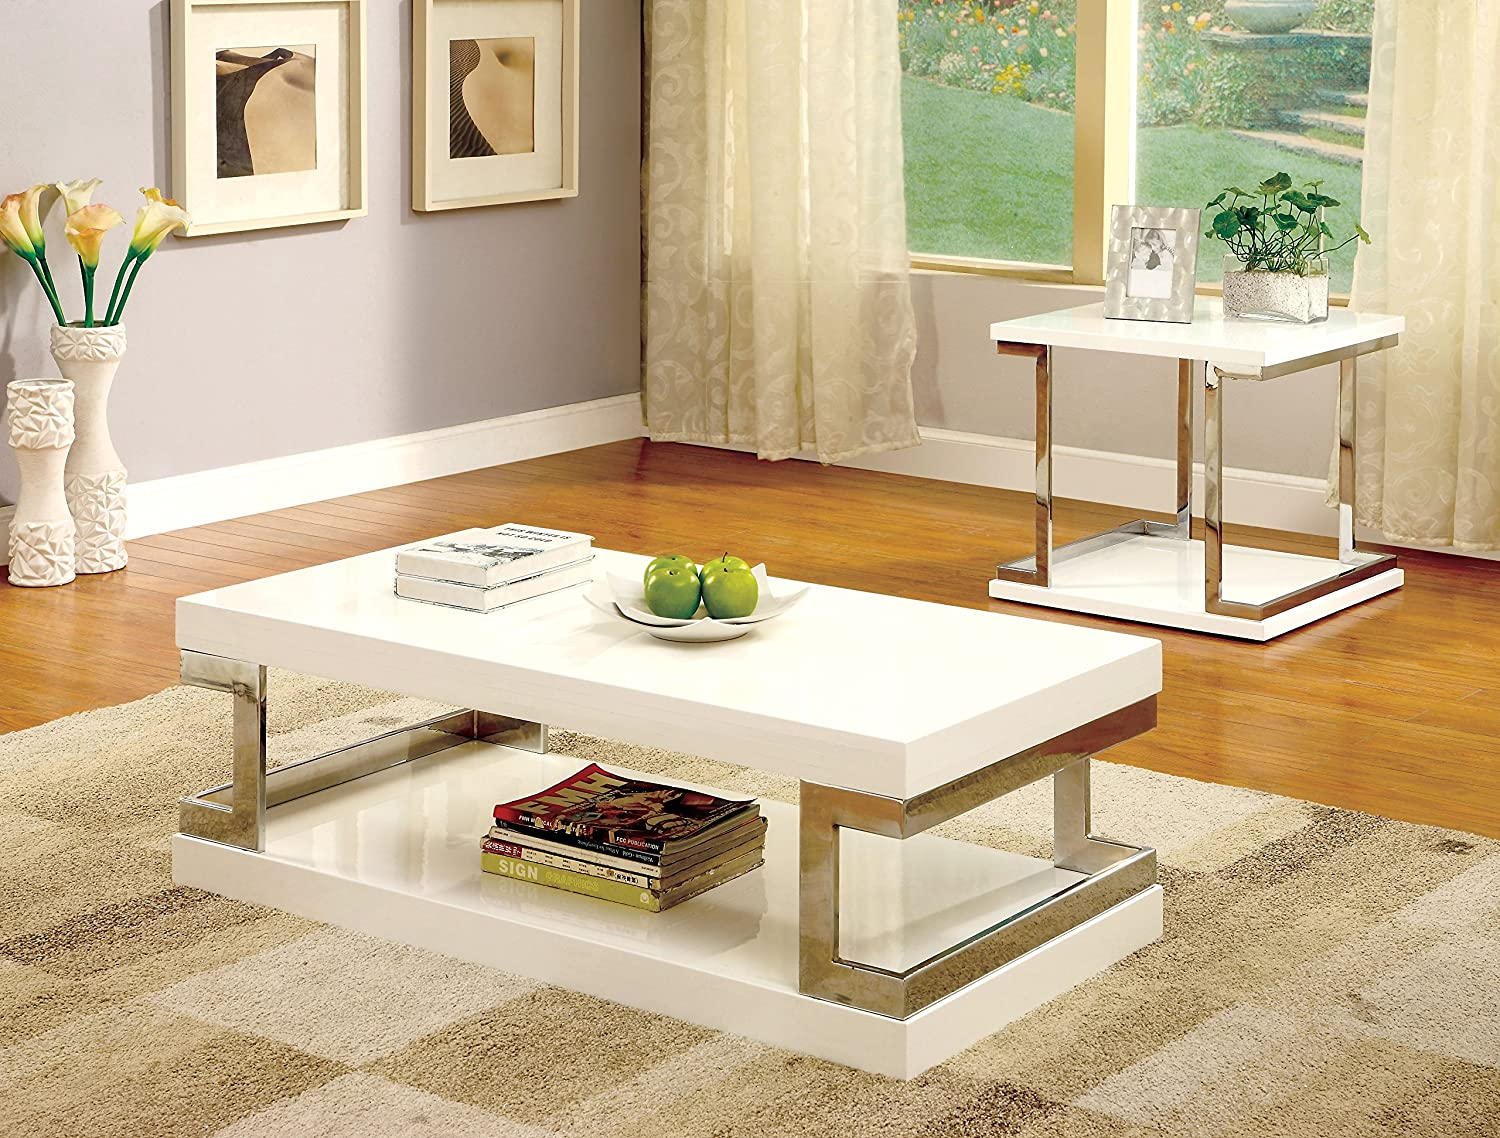 amazoncom furniture of america adina modern coffee table white kitchen dining - Modern Coffee Table Sets